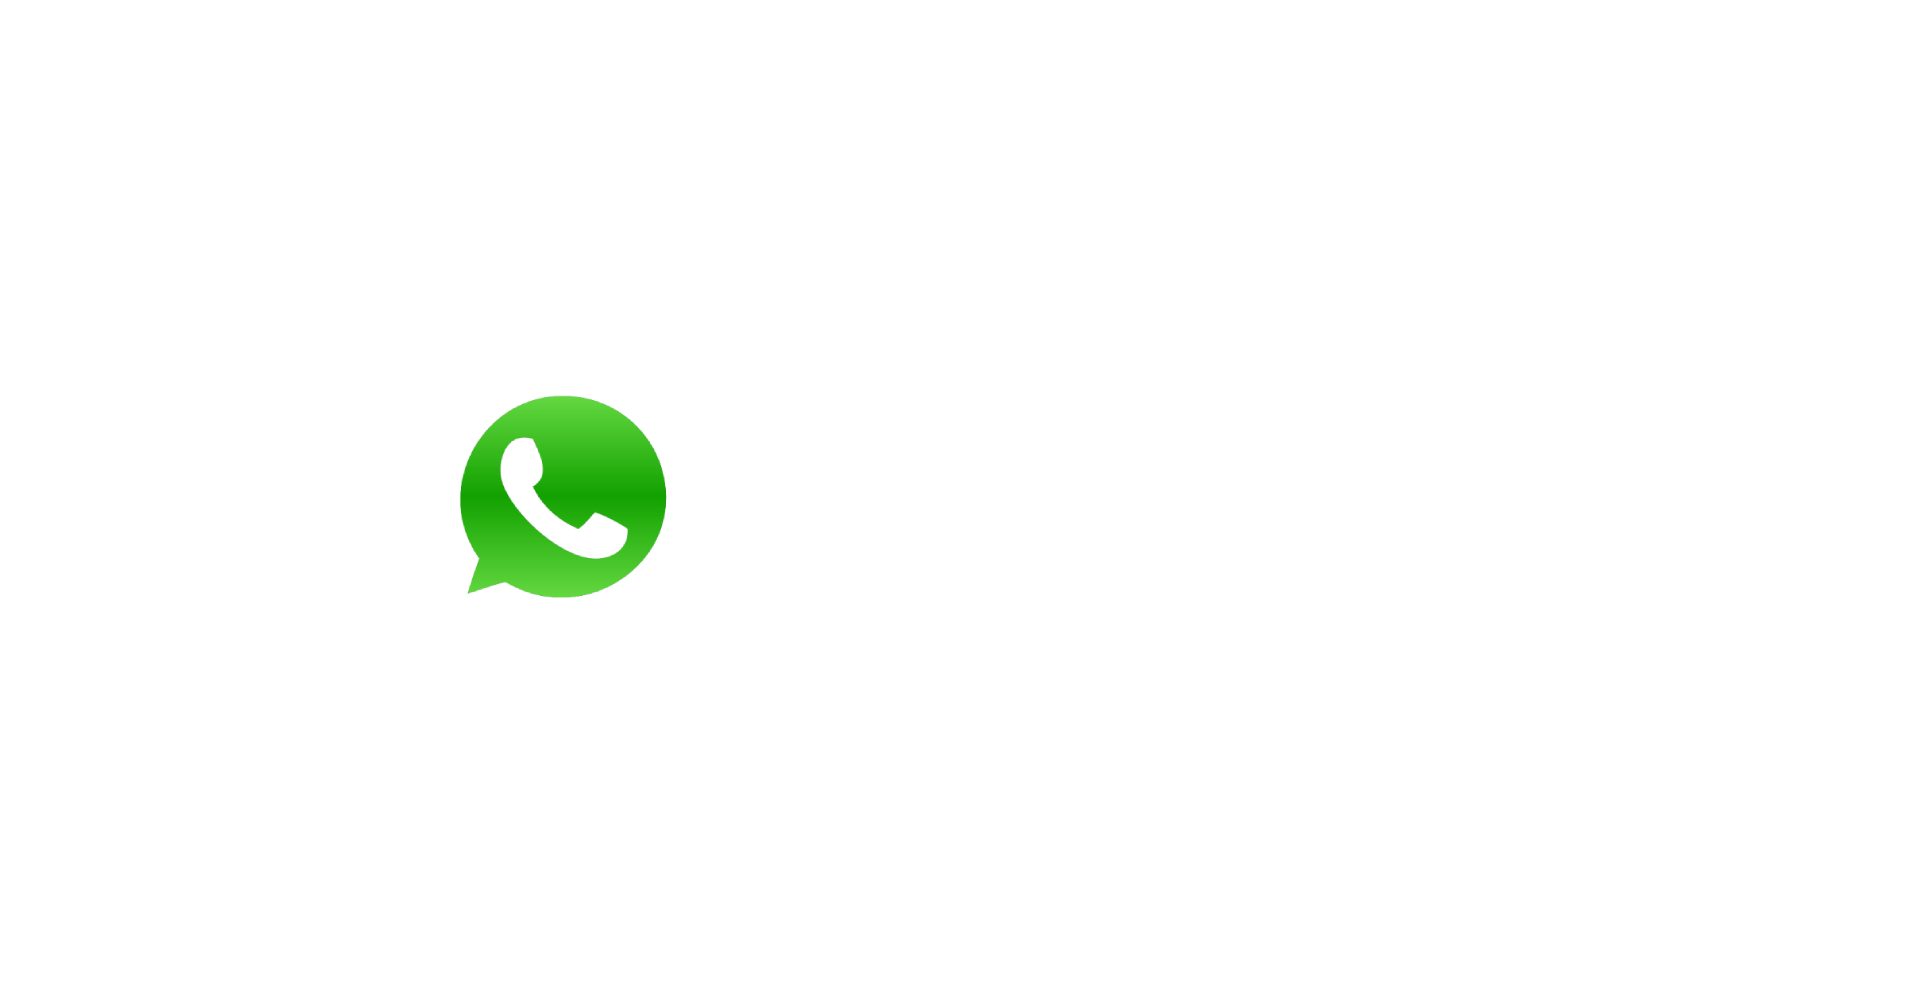 Whatsapp bel logo